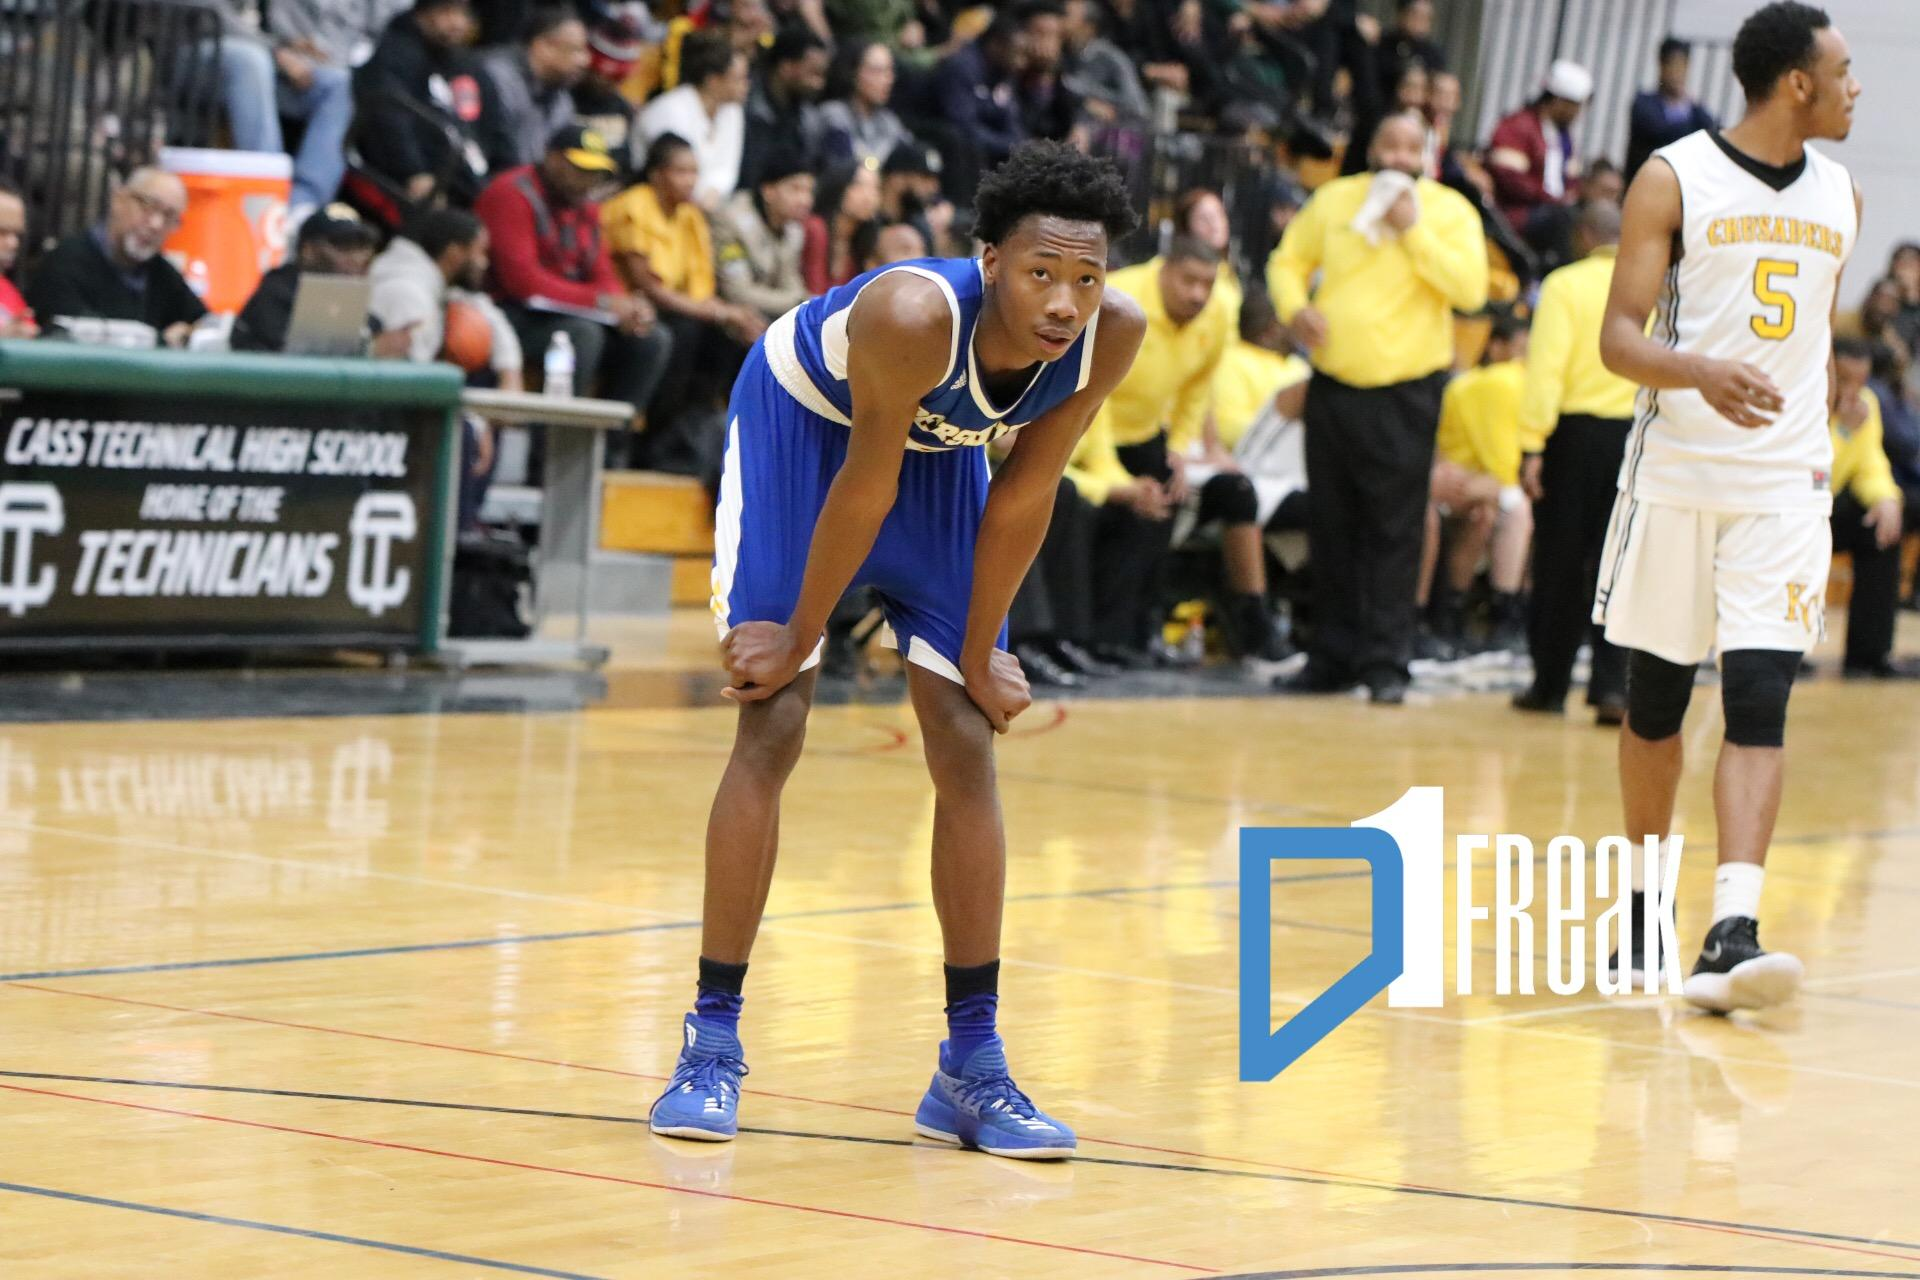 Charles Brown (18/Detroit Pershing) PSL Quarterfinal Highlights